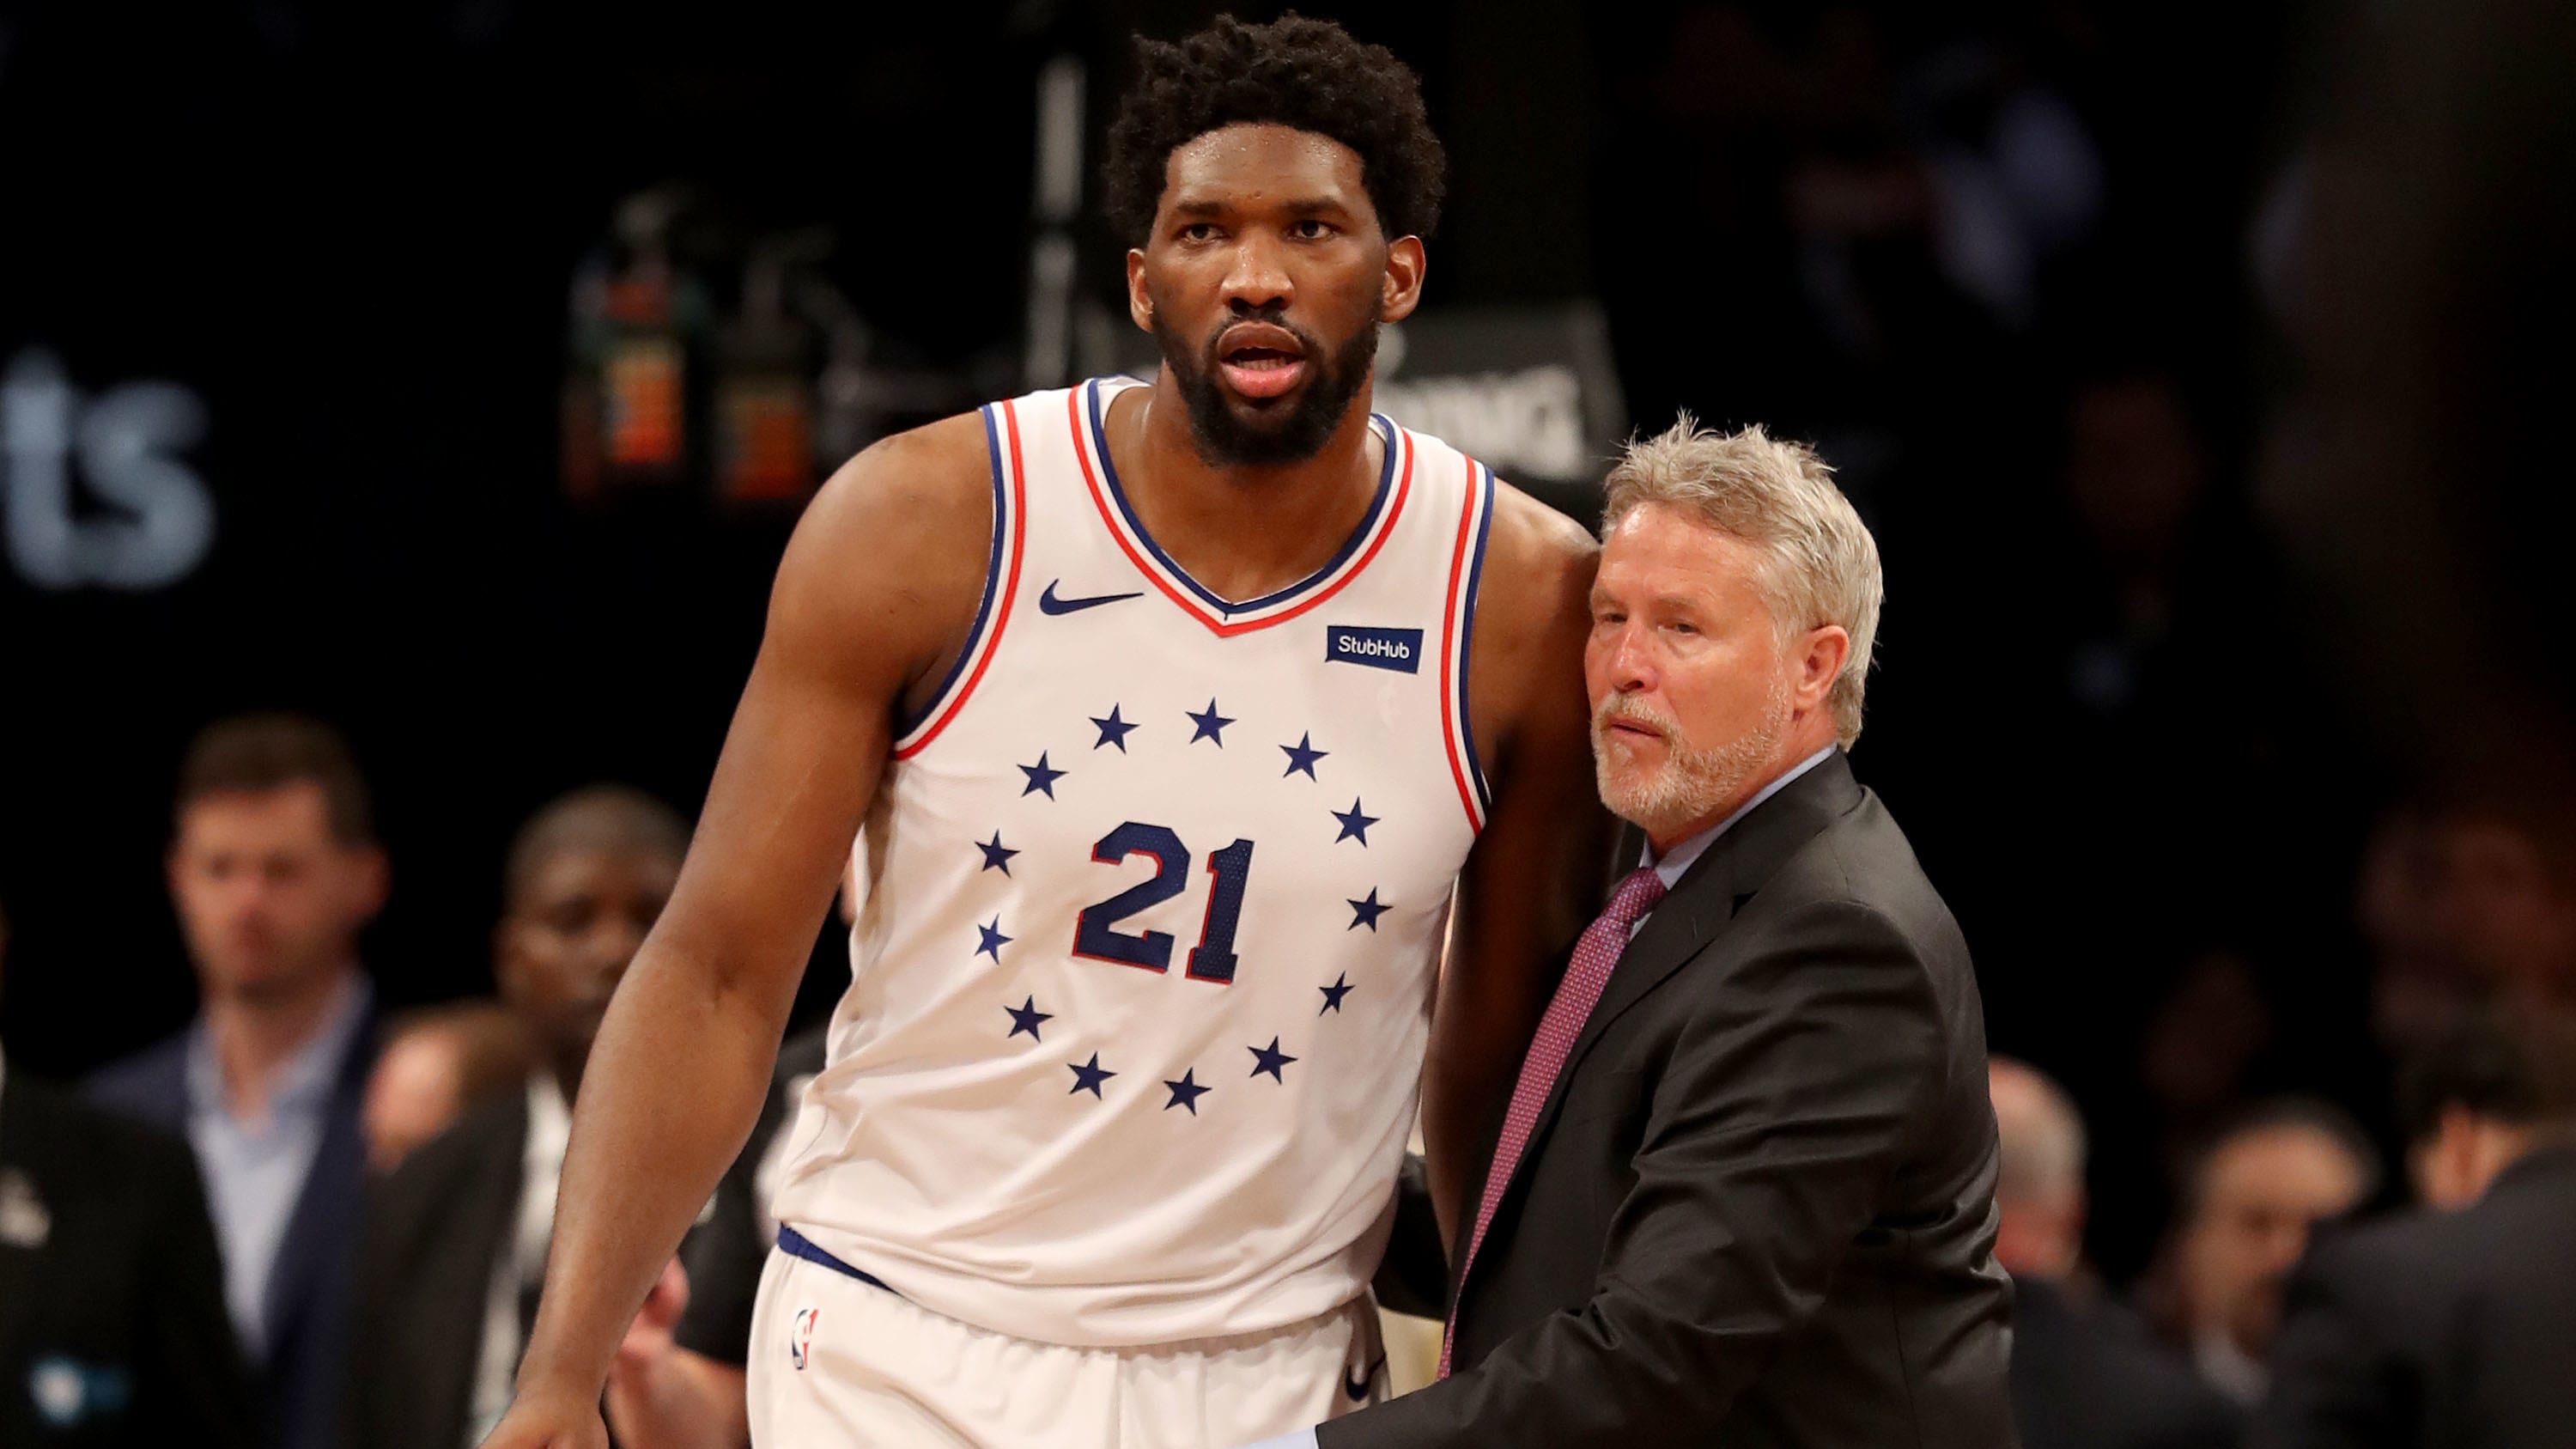 NEW YORK, NEW YORK - APRIL 20:  Head coach Brett Brown of the Philadelphia 76ers holds back his player Joel Embiid #21 after a scuffle between Brooklyn Nets and Philadelphia 76ers players in the third quarter at Barclays Center on April 20, 2019 in the Brooklyn borough of New York City.The Philadelphia 76ers defeated the Brooklyn Nets 112-108. NOTE TO USER: User expressly acknowledges and agrees that, by downloading and or using this photograph, User is consenting to the terms and conditions of the Getty Images License Agreement. (Photo by Elsa/Getty Images)